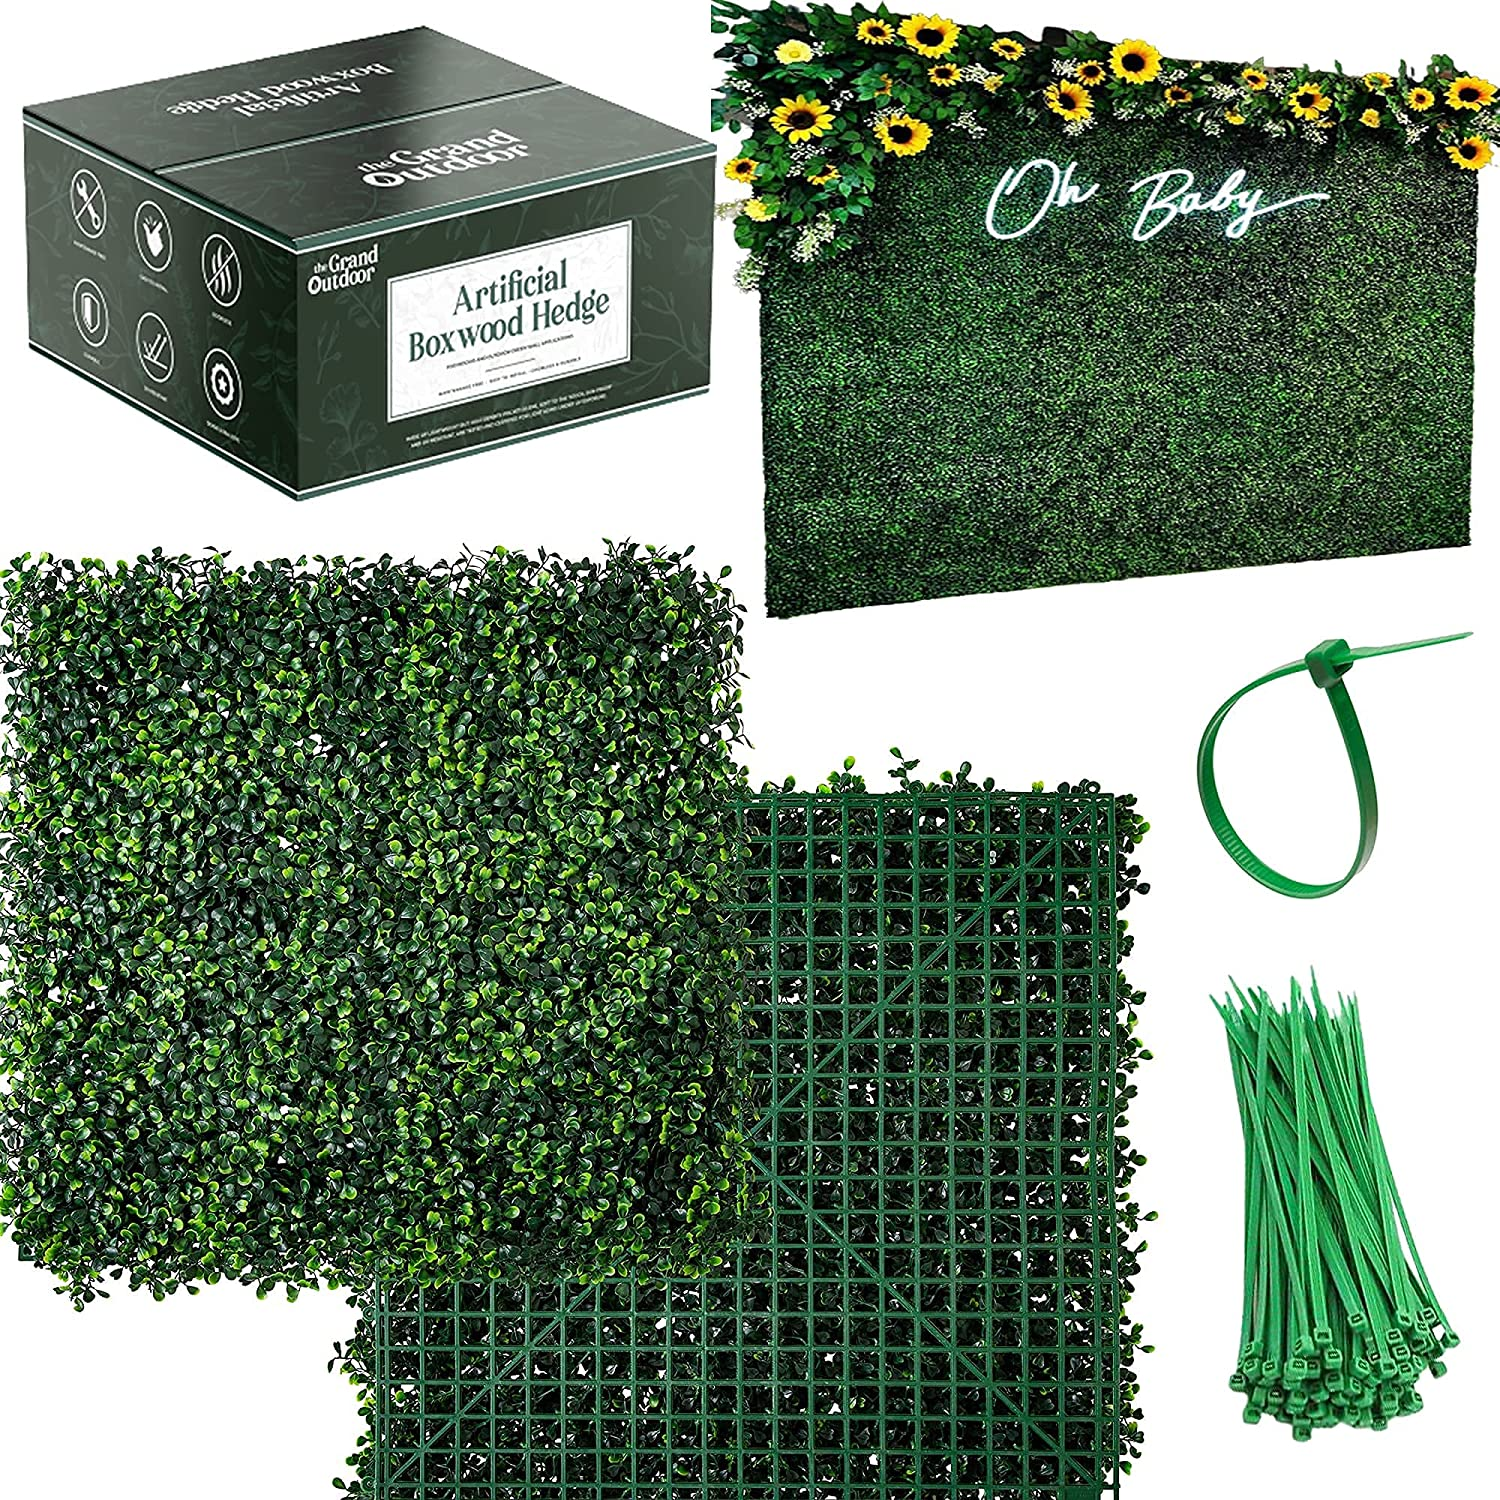 The Grand Outdoor Grass Wall Panels - 12x 20in Bushy Artificial Boxwood Panel Squares and 30x Ties. Artificial Grass Wall Decor, Fake Plant Wall Outdoor Privacy Screen, Greenery Backdrop